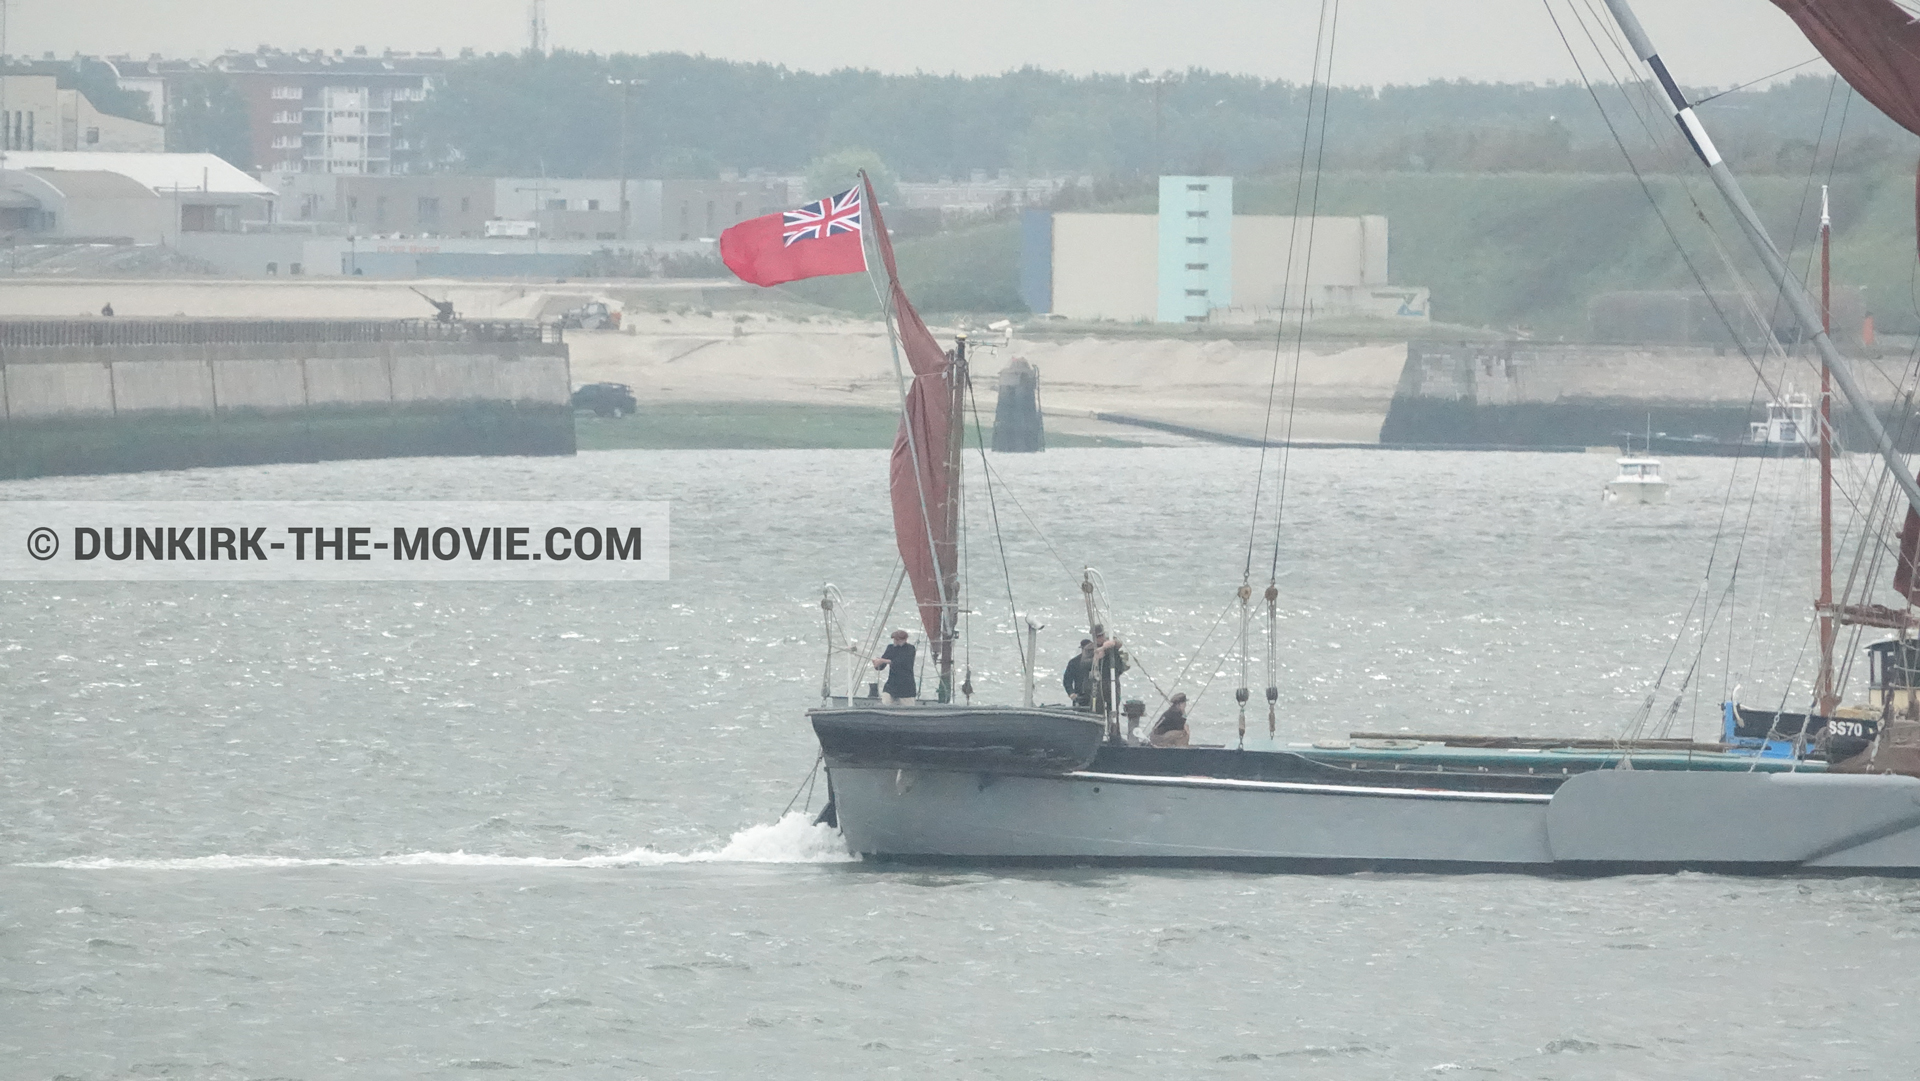 Picture with boat, Xylonite,  from behind the scene of the Dunkirk movie by Nolan